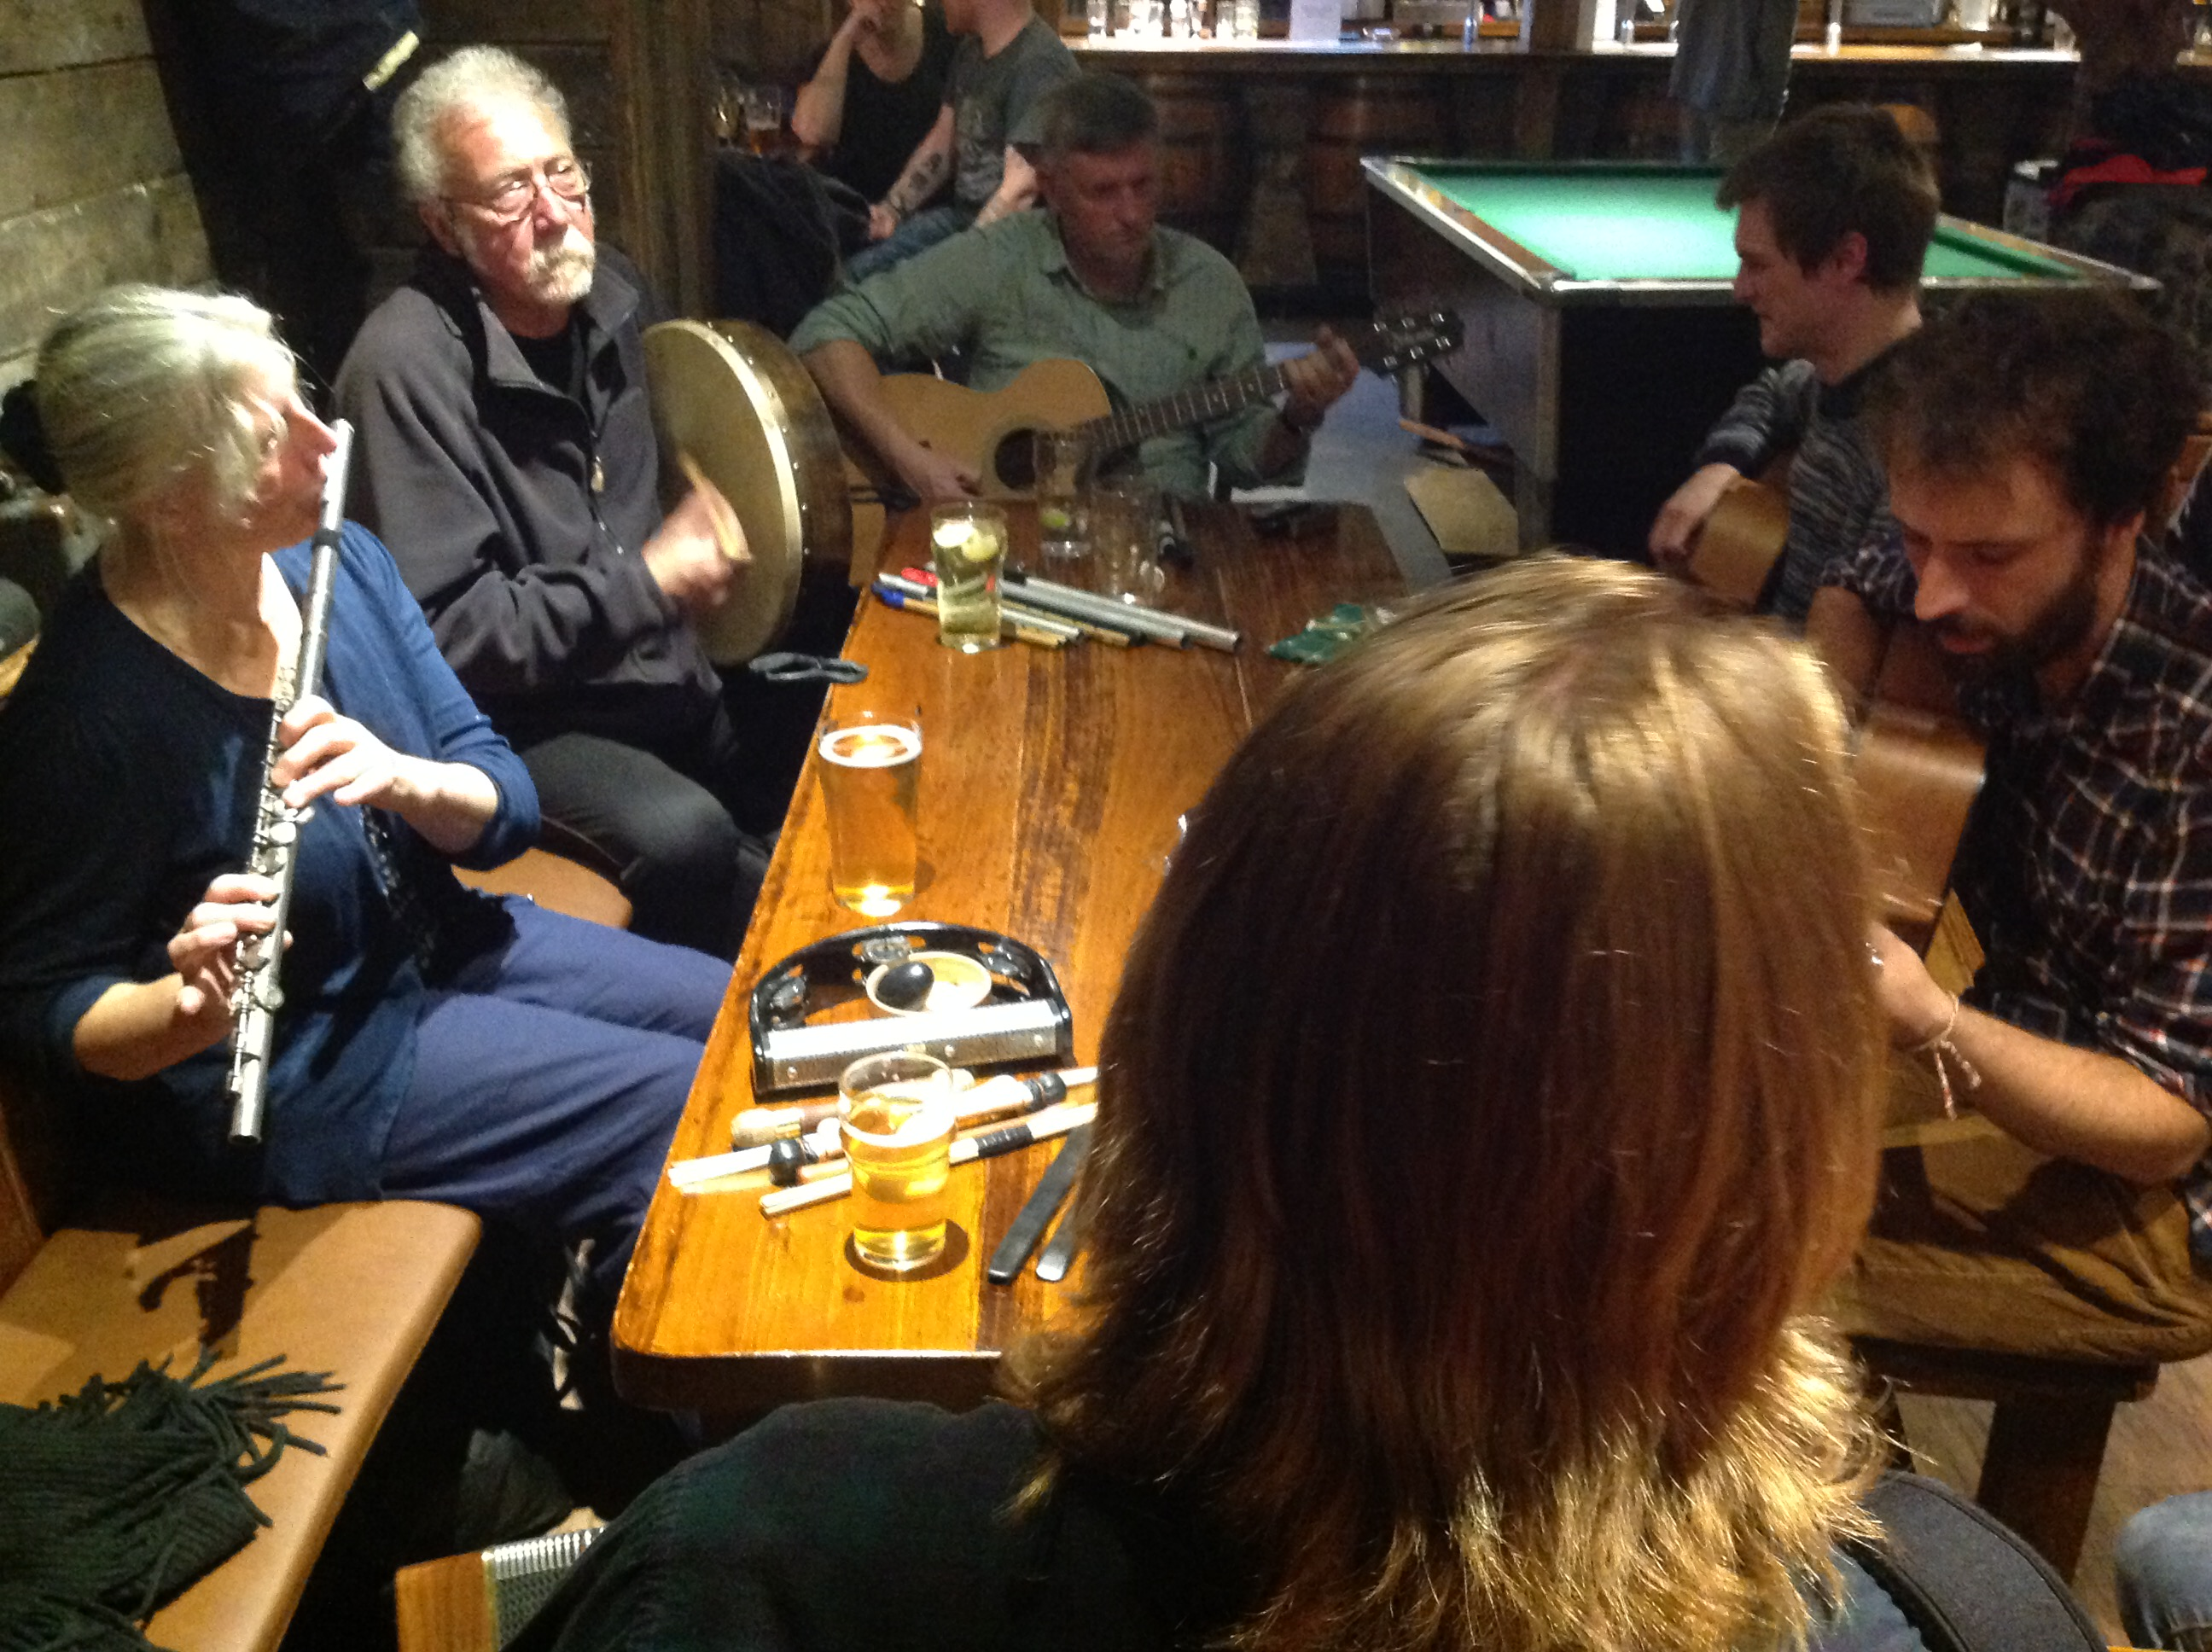 folk music craic at the Clachaig Inn